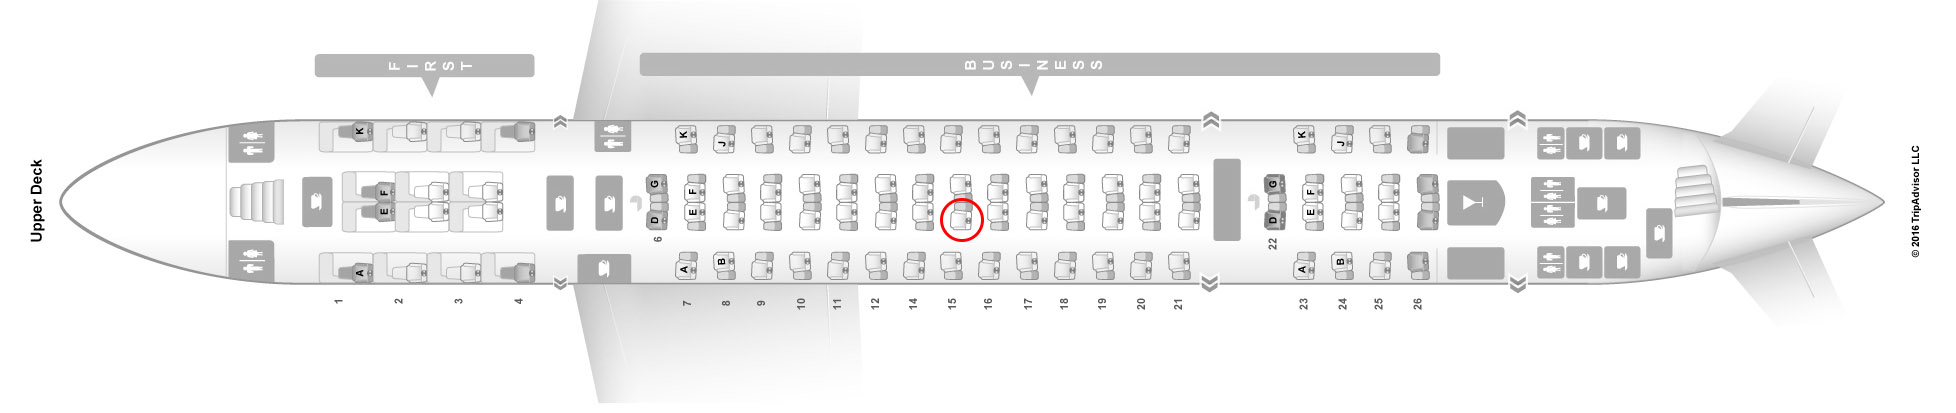 Emirates A380-800 upper deck business class seat map